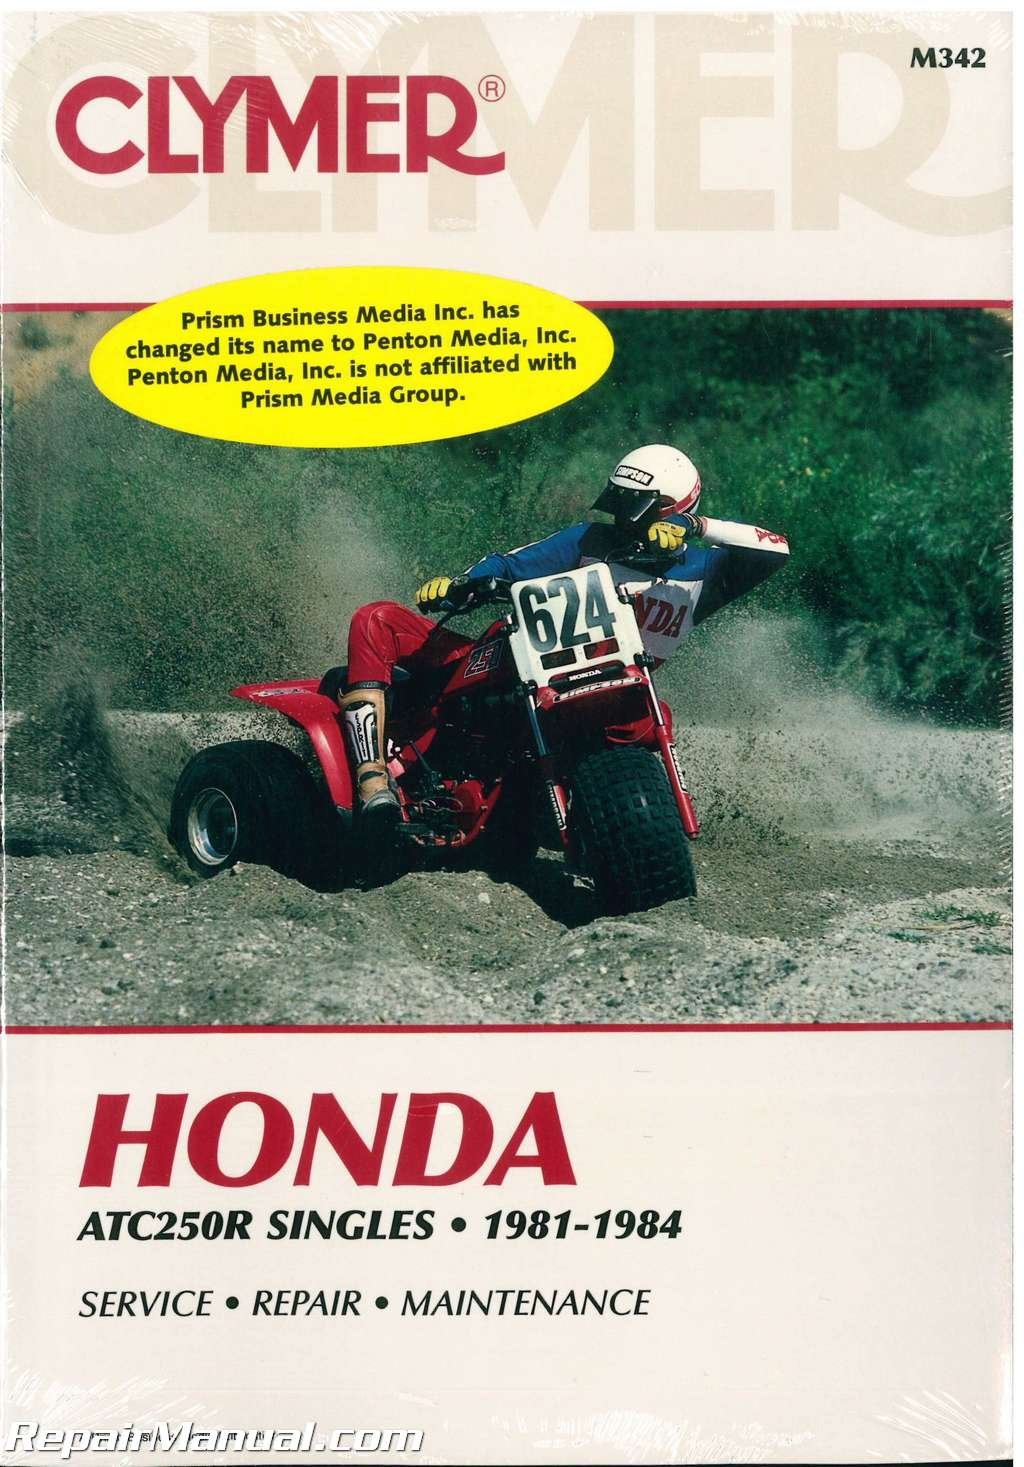 M342 Honda ATC 250R 1981 1982 1983 1984 Clymer Repair Manual: Manufacturer:  Amazon.com: Books